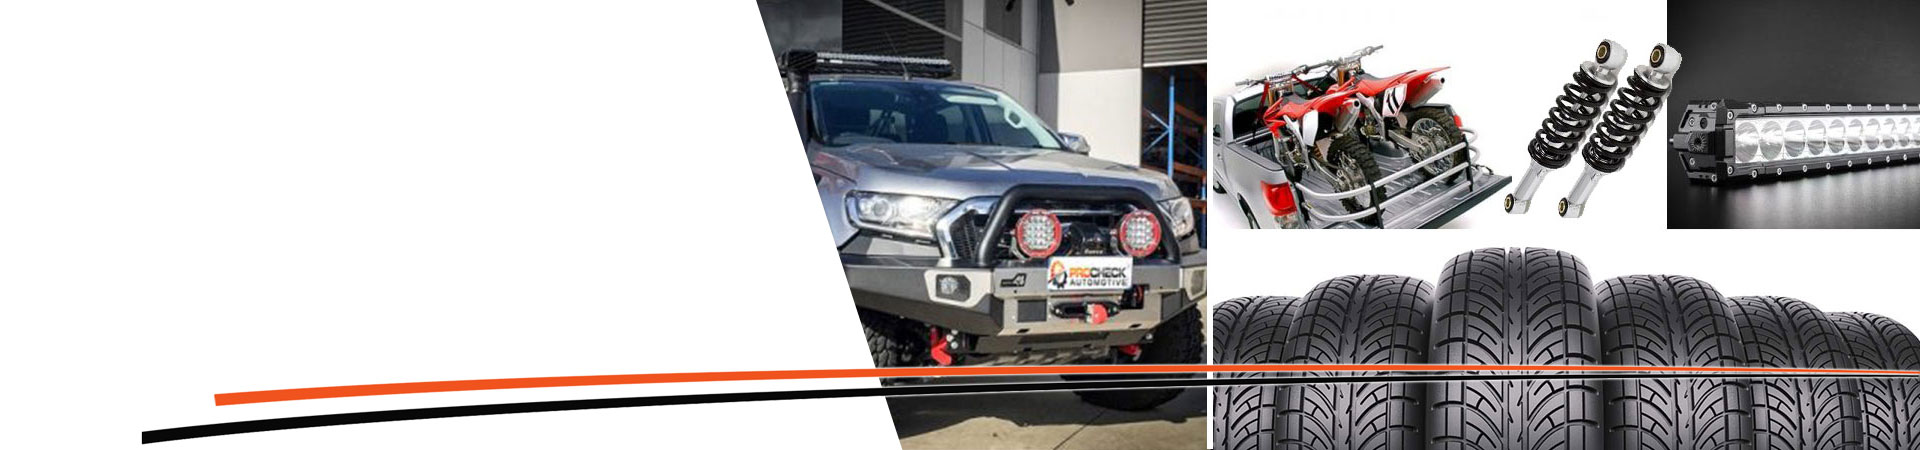 4wd online shopping - Procheck Automotive